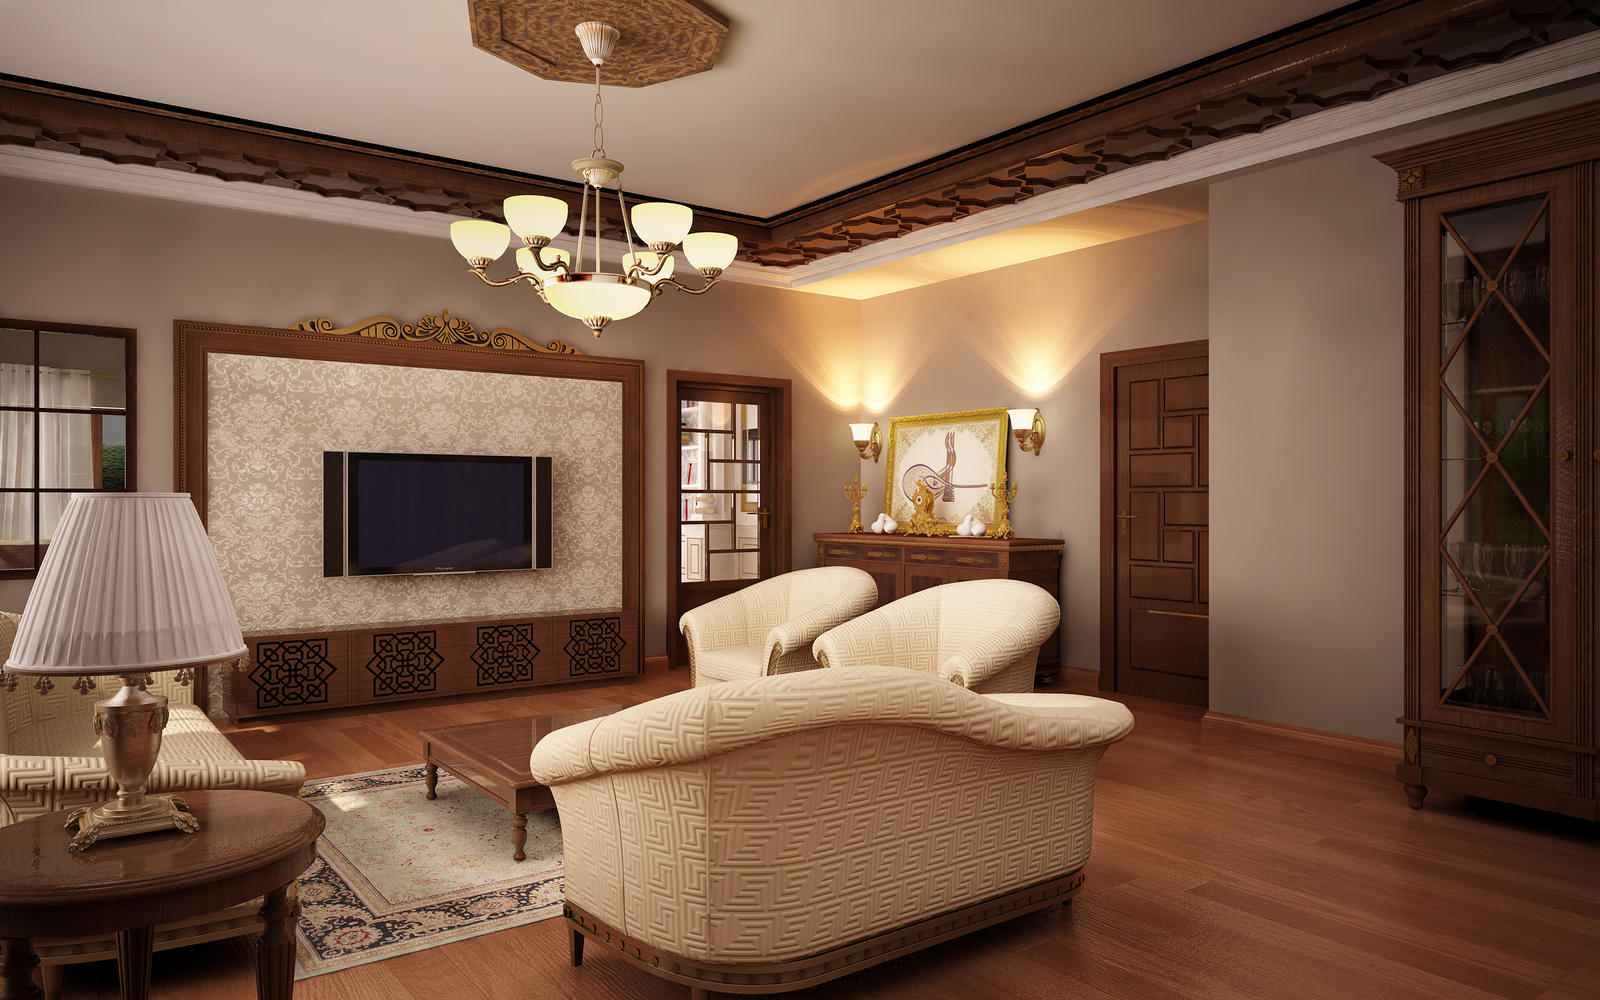 Classic living room 06 by murataral on deviantart - Classic living rooms interior design ...